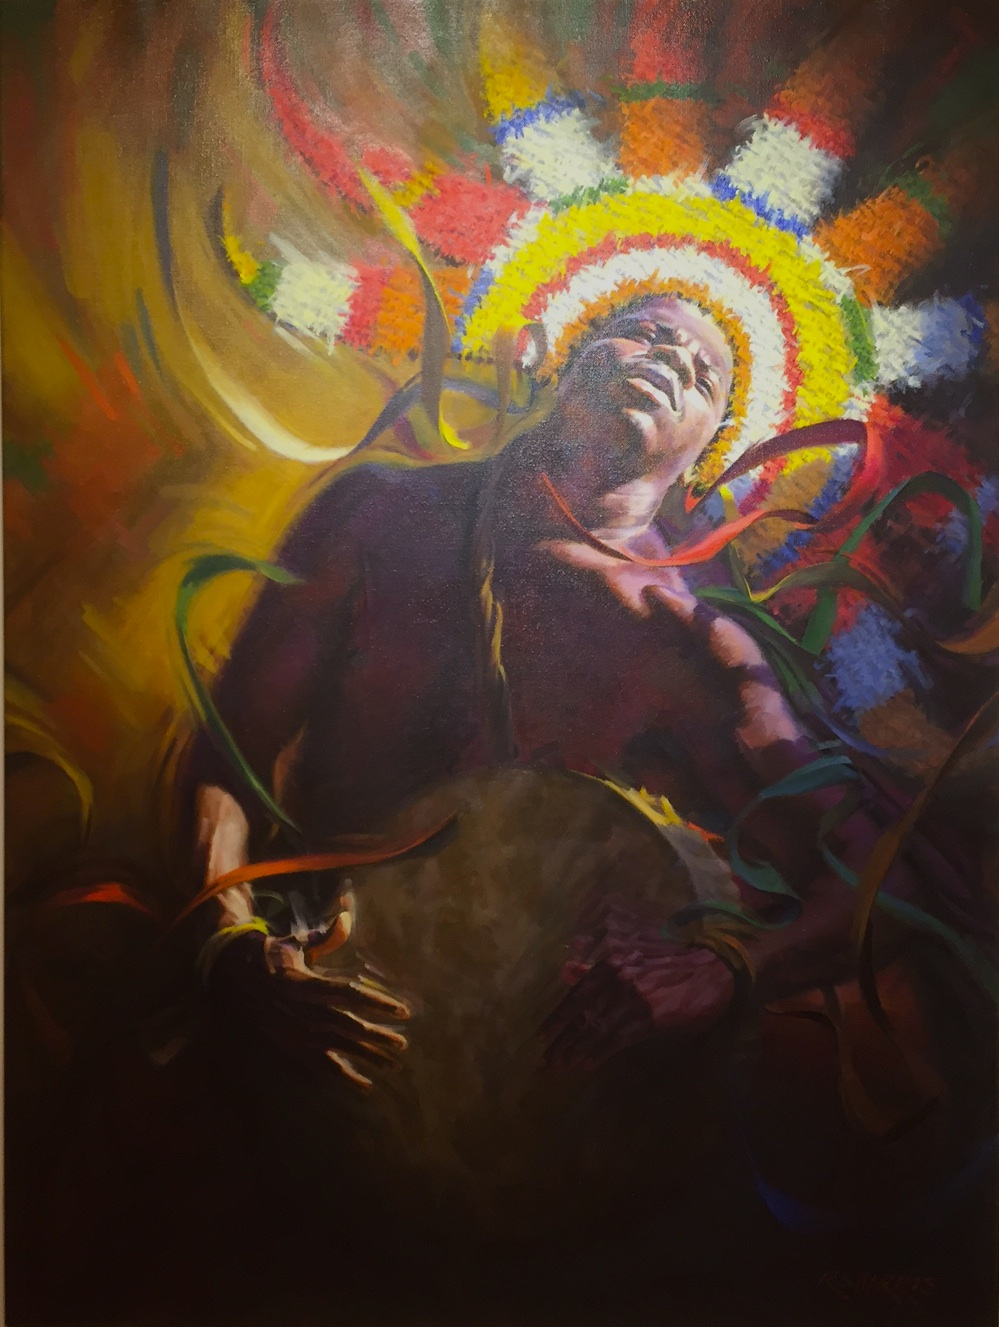 Rolfe Harris, Junkanooer,1991. Oil on Canvas, 50 x 40 ins., D'Aguilar Art Collection.